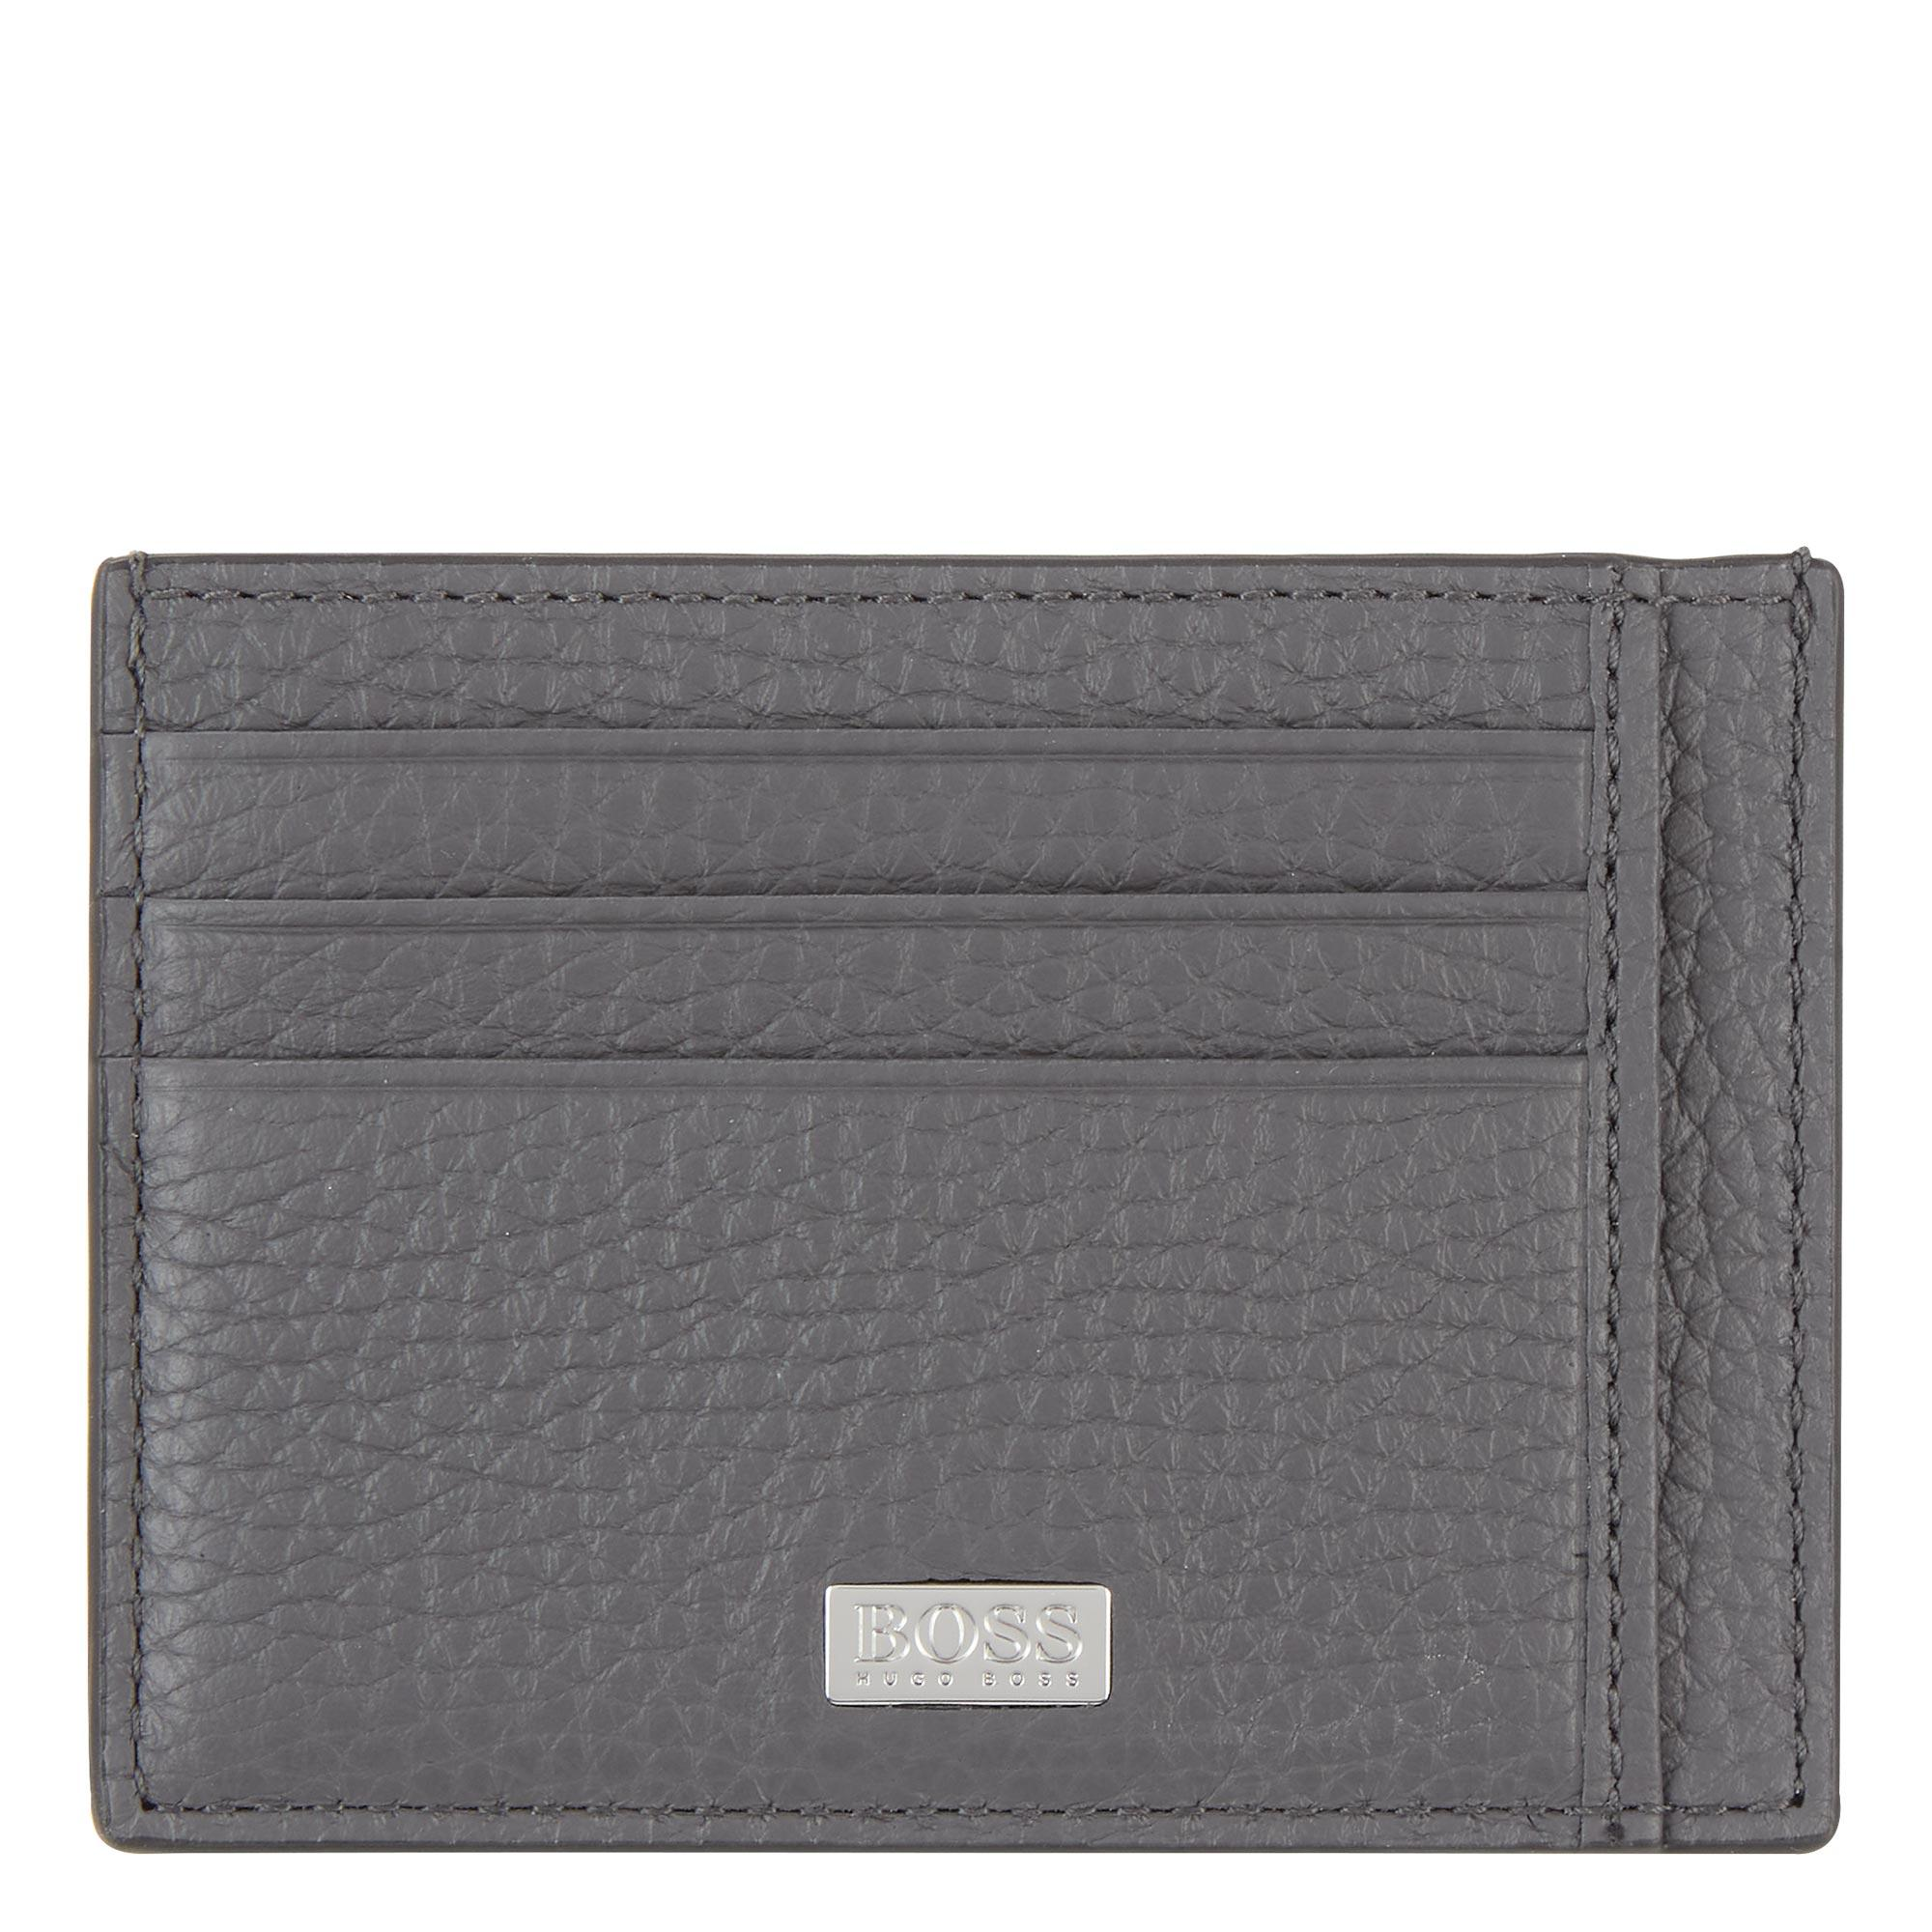 Crosstown Leather Cardholder